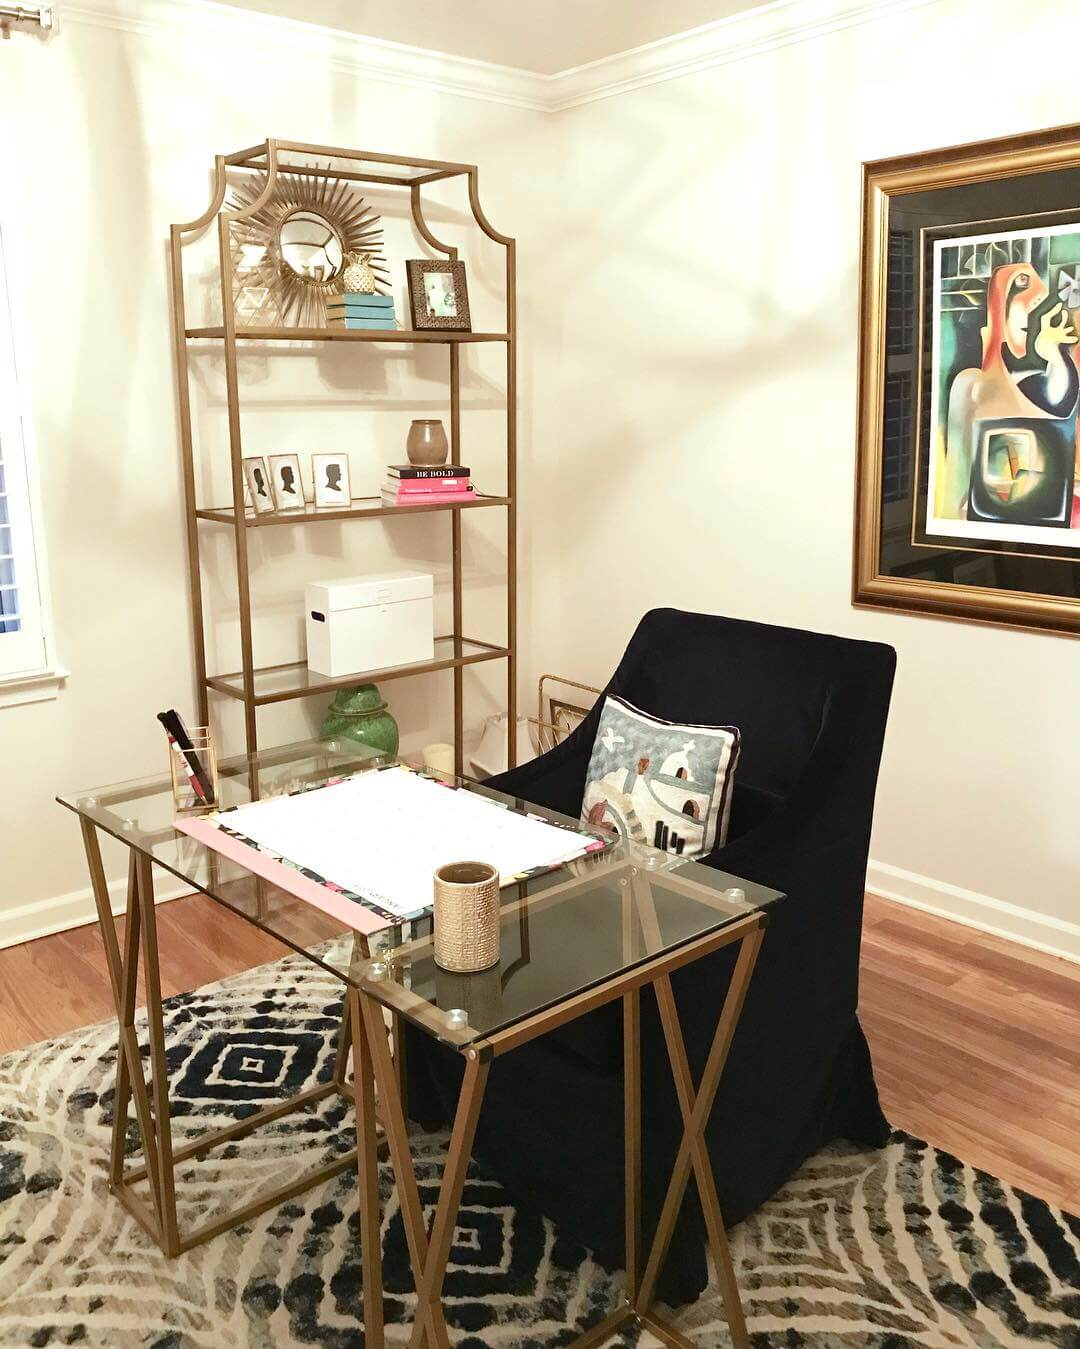 Simple style and function makes this home office perfect.